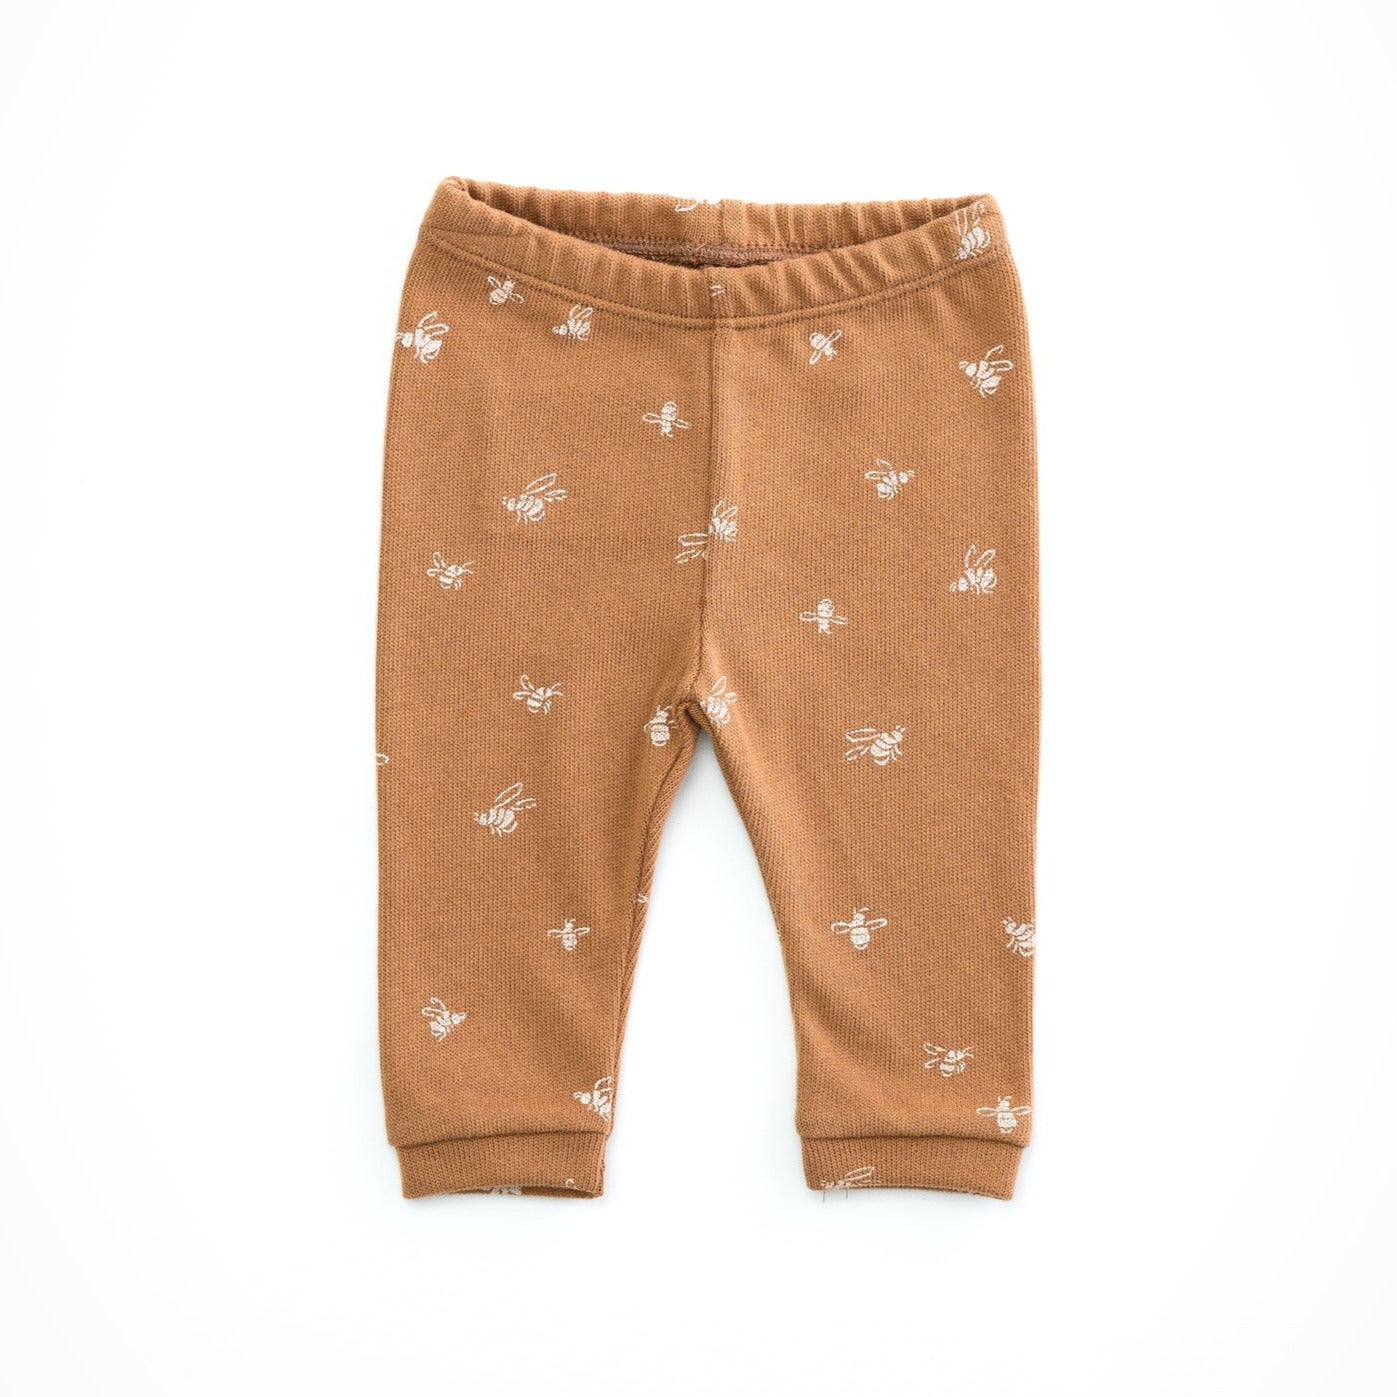 PLAY UP Leggings Jersey mit Bienen Print Organic Cotton